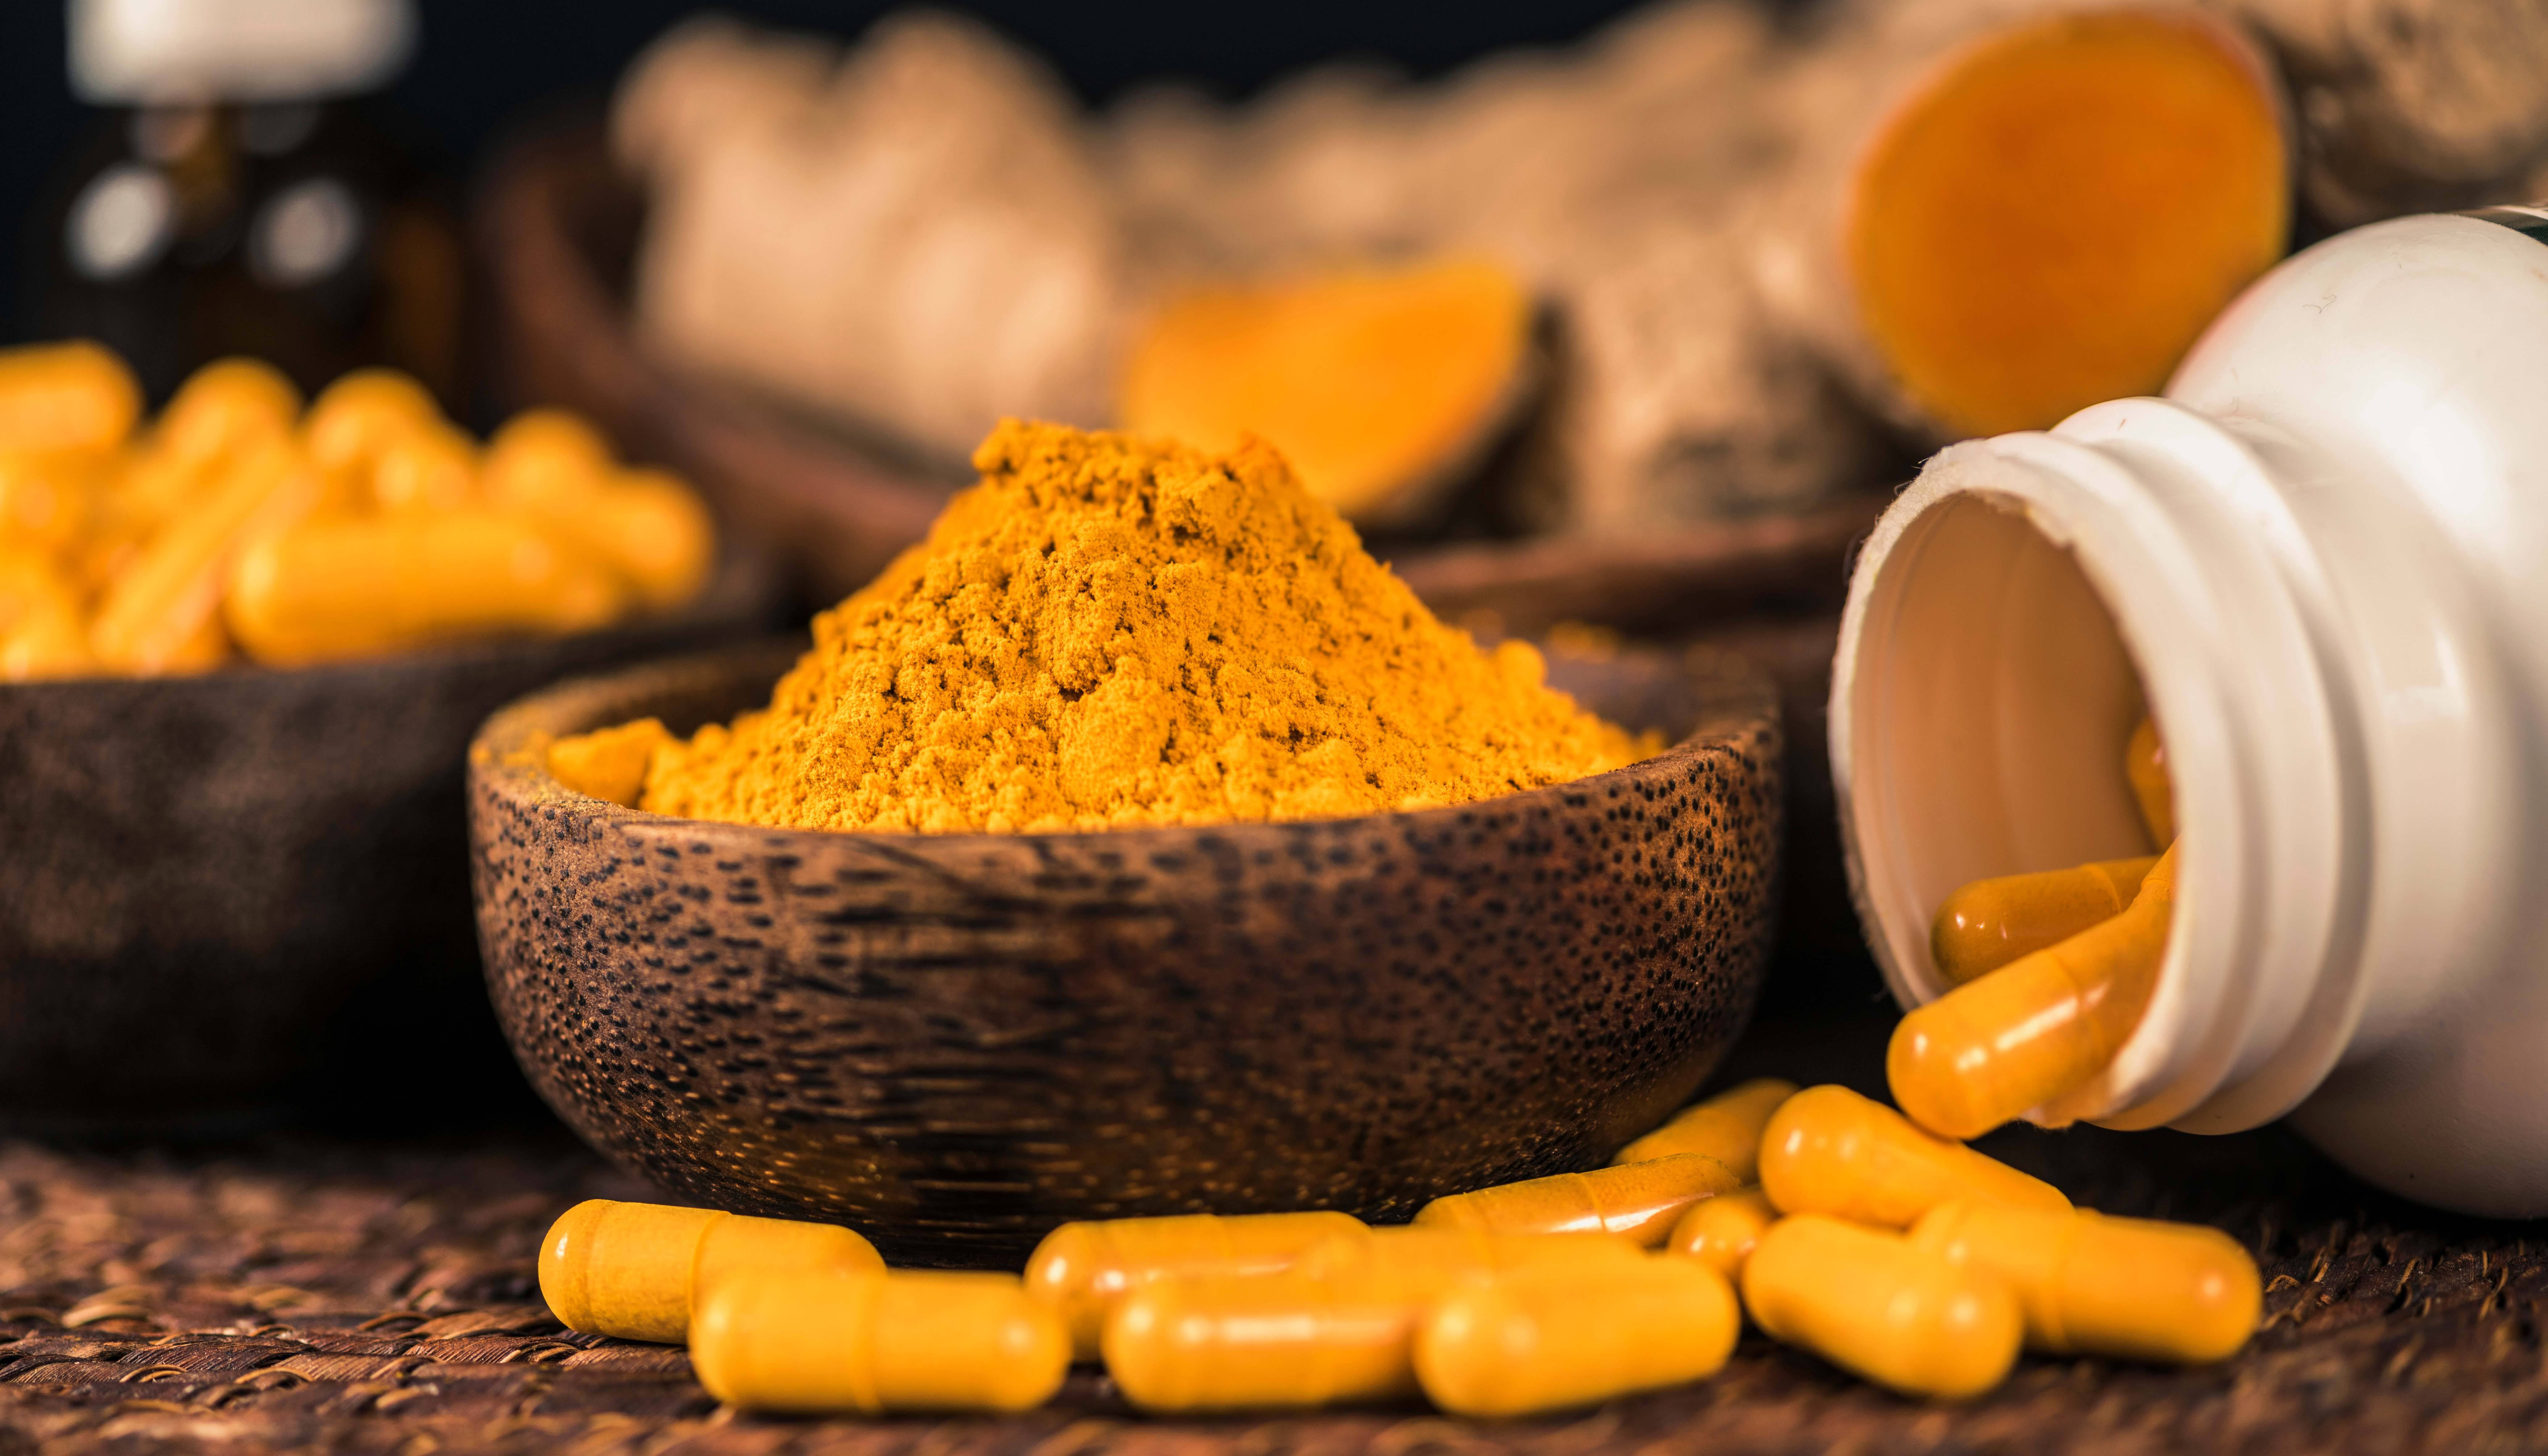 Efficacy and safety of curcumin in PSC: an open label pilot study